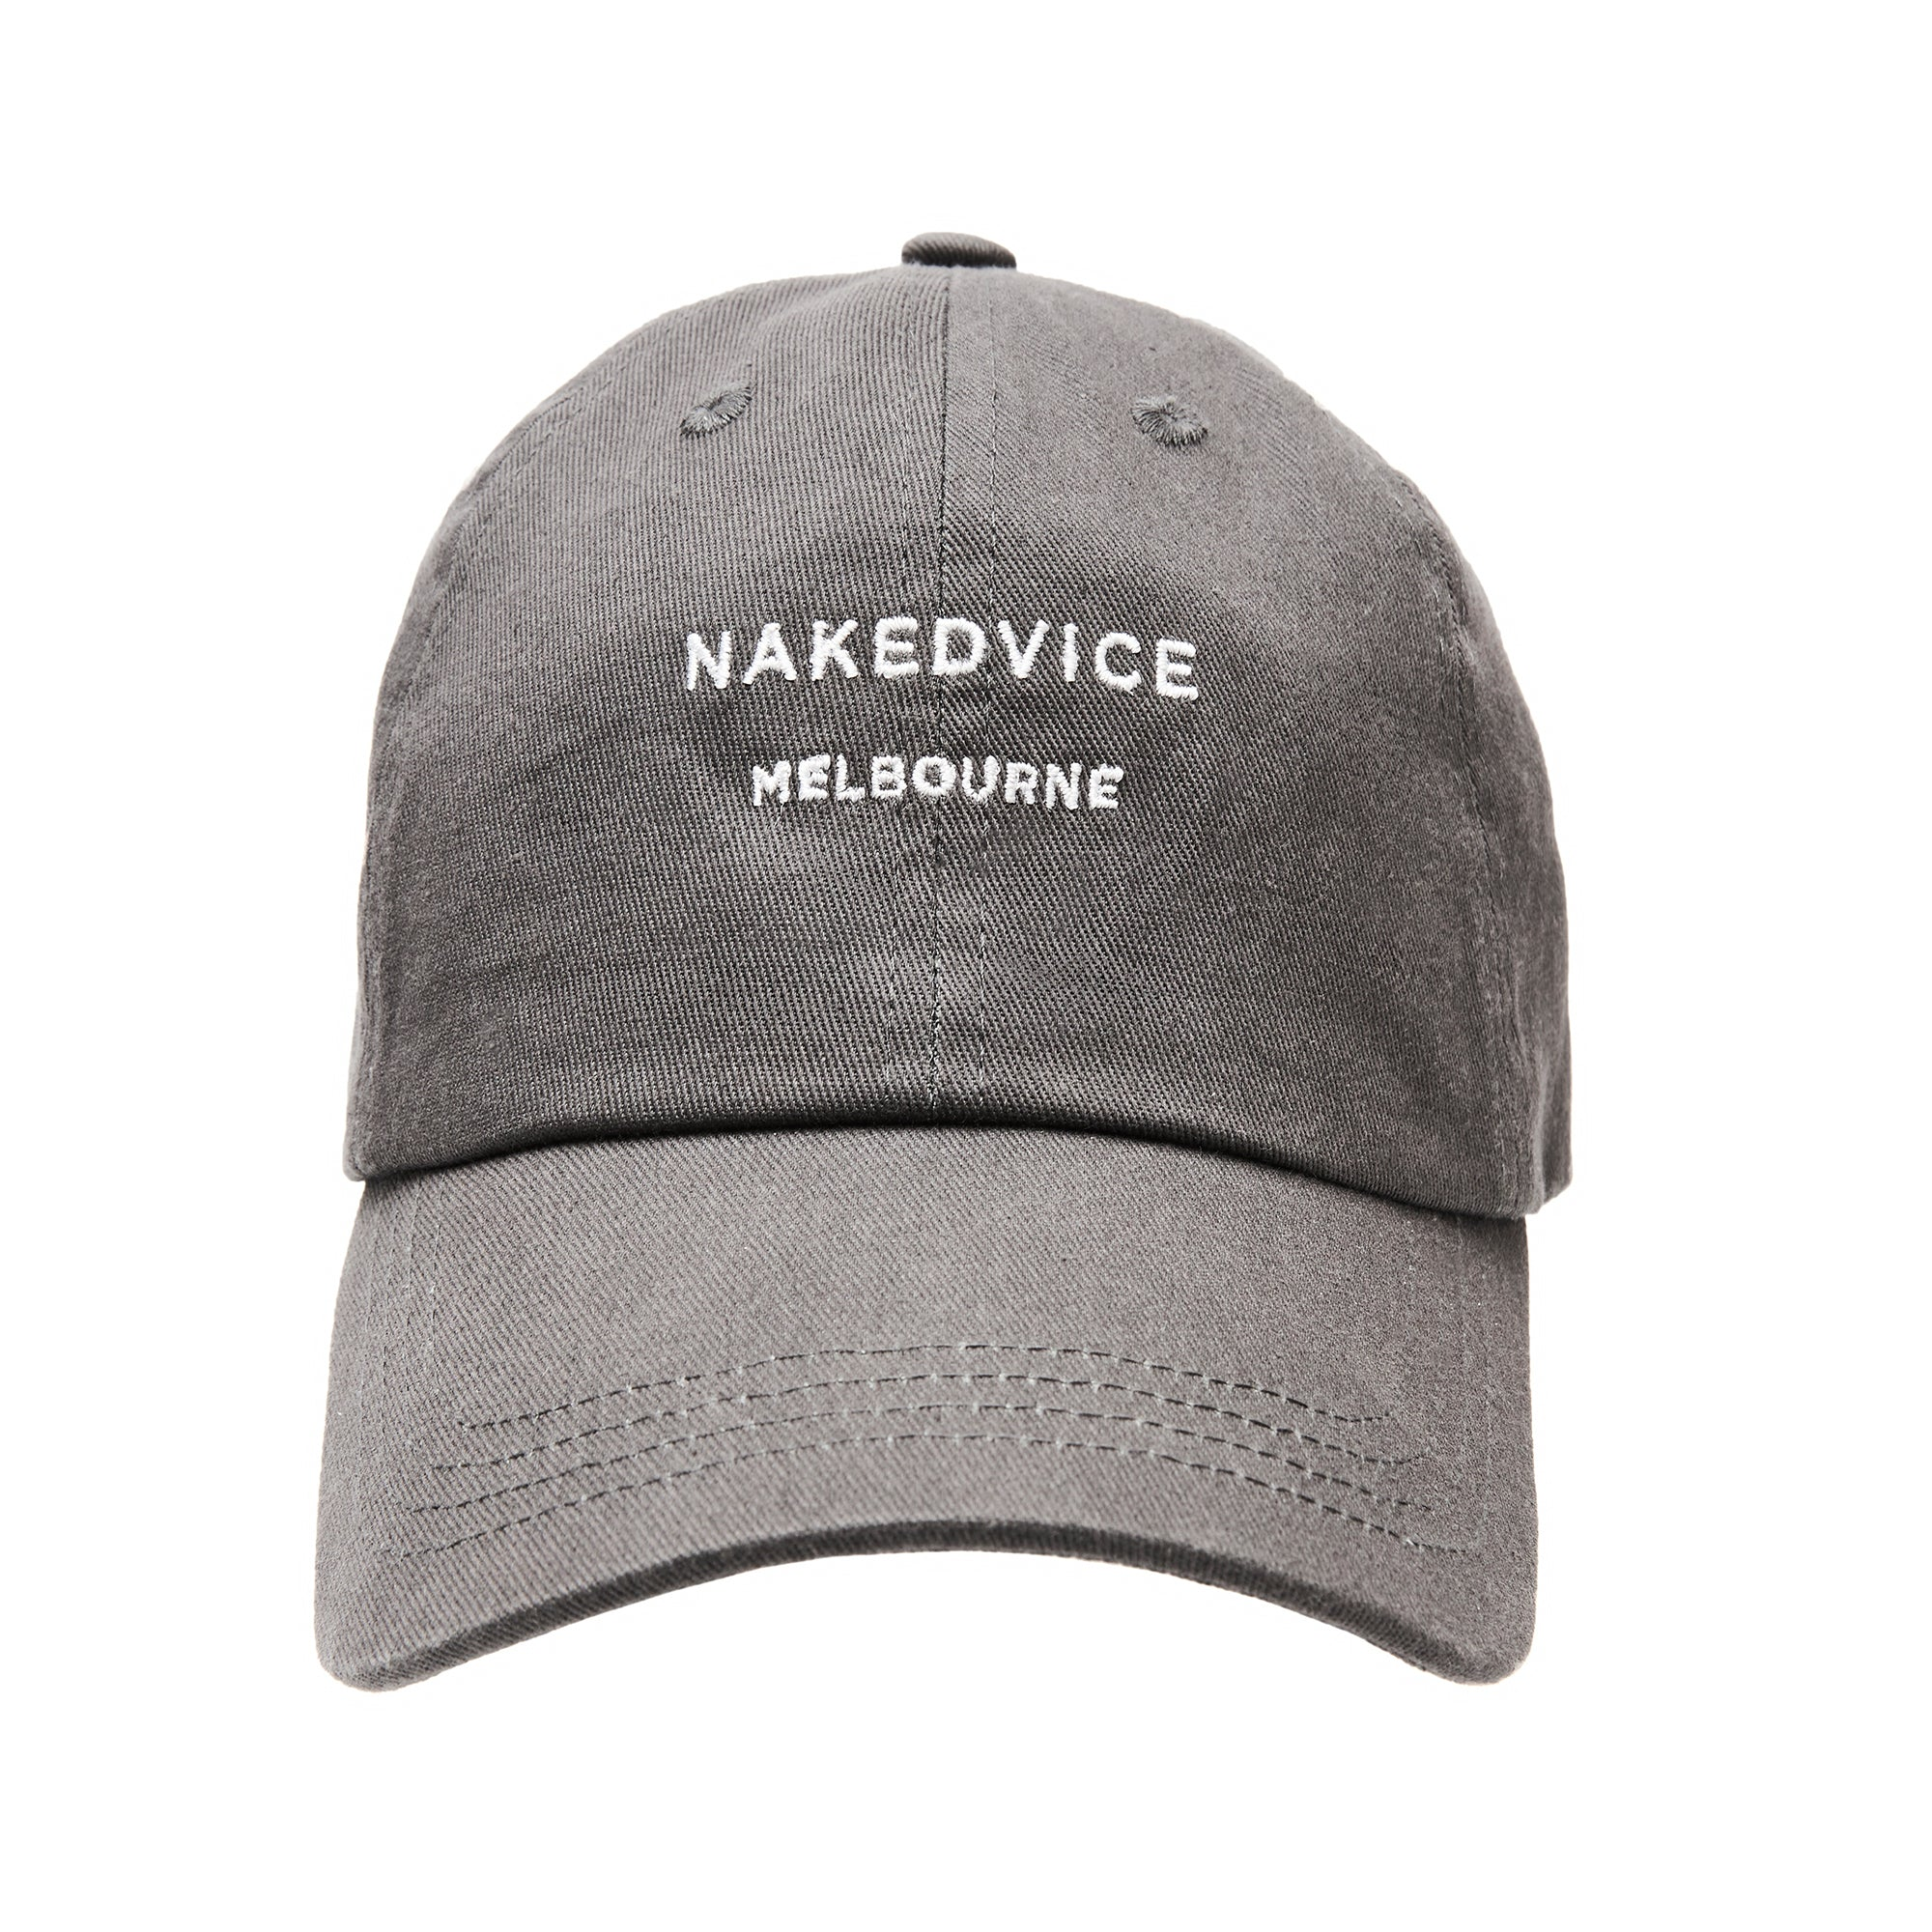 THE NAKEDVICE CAP